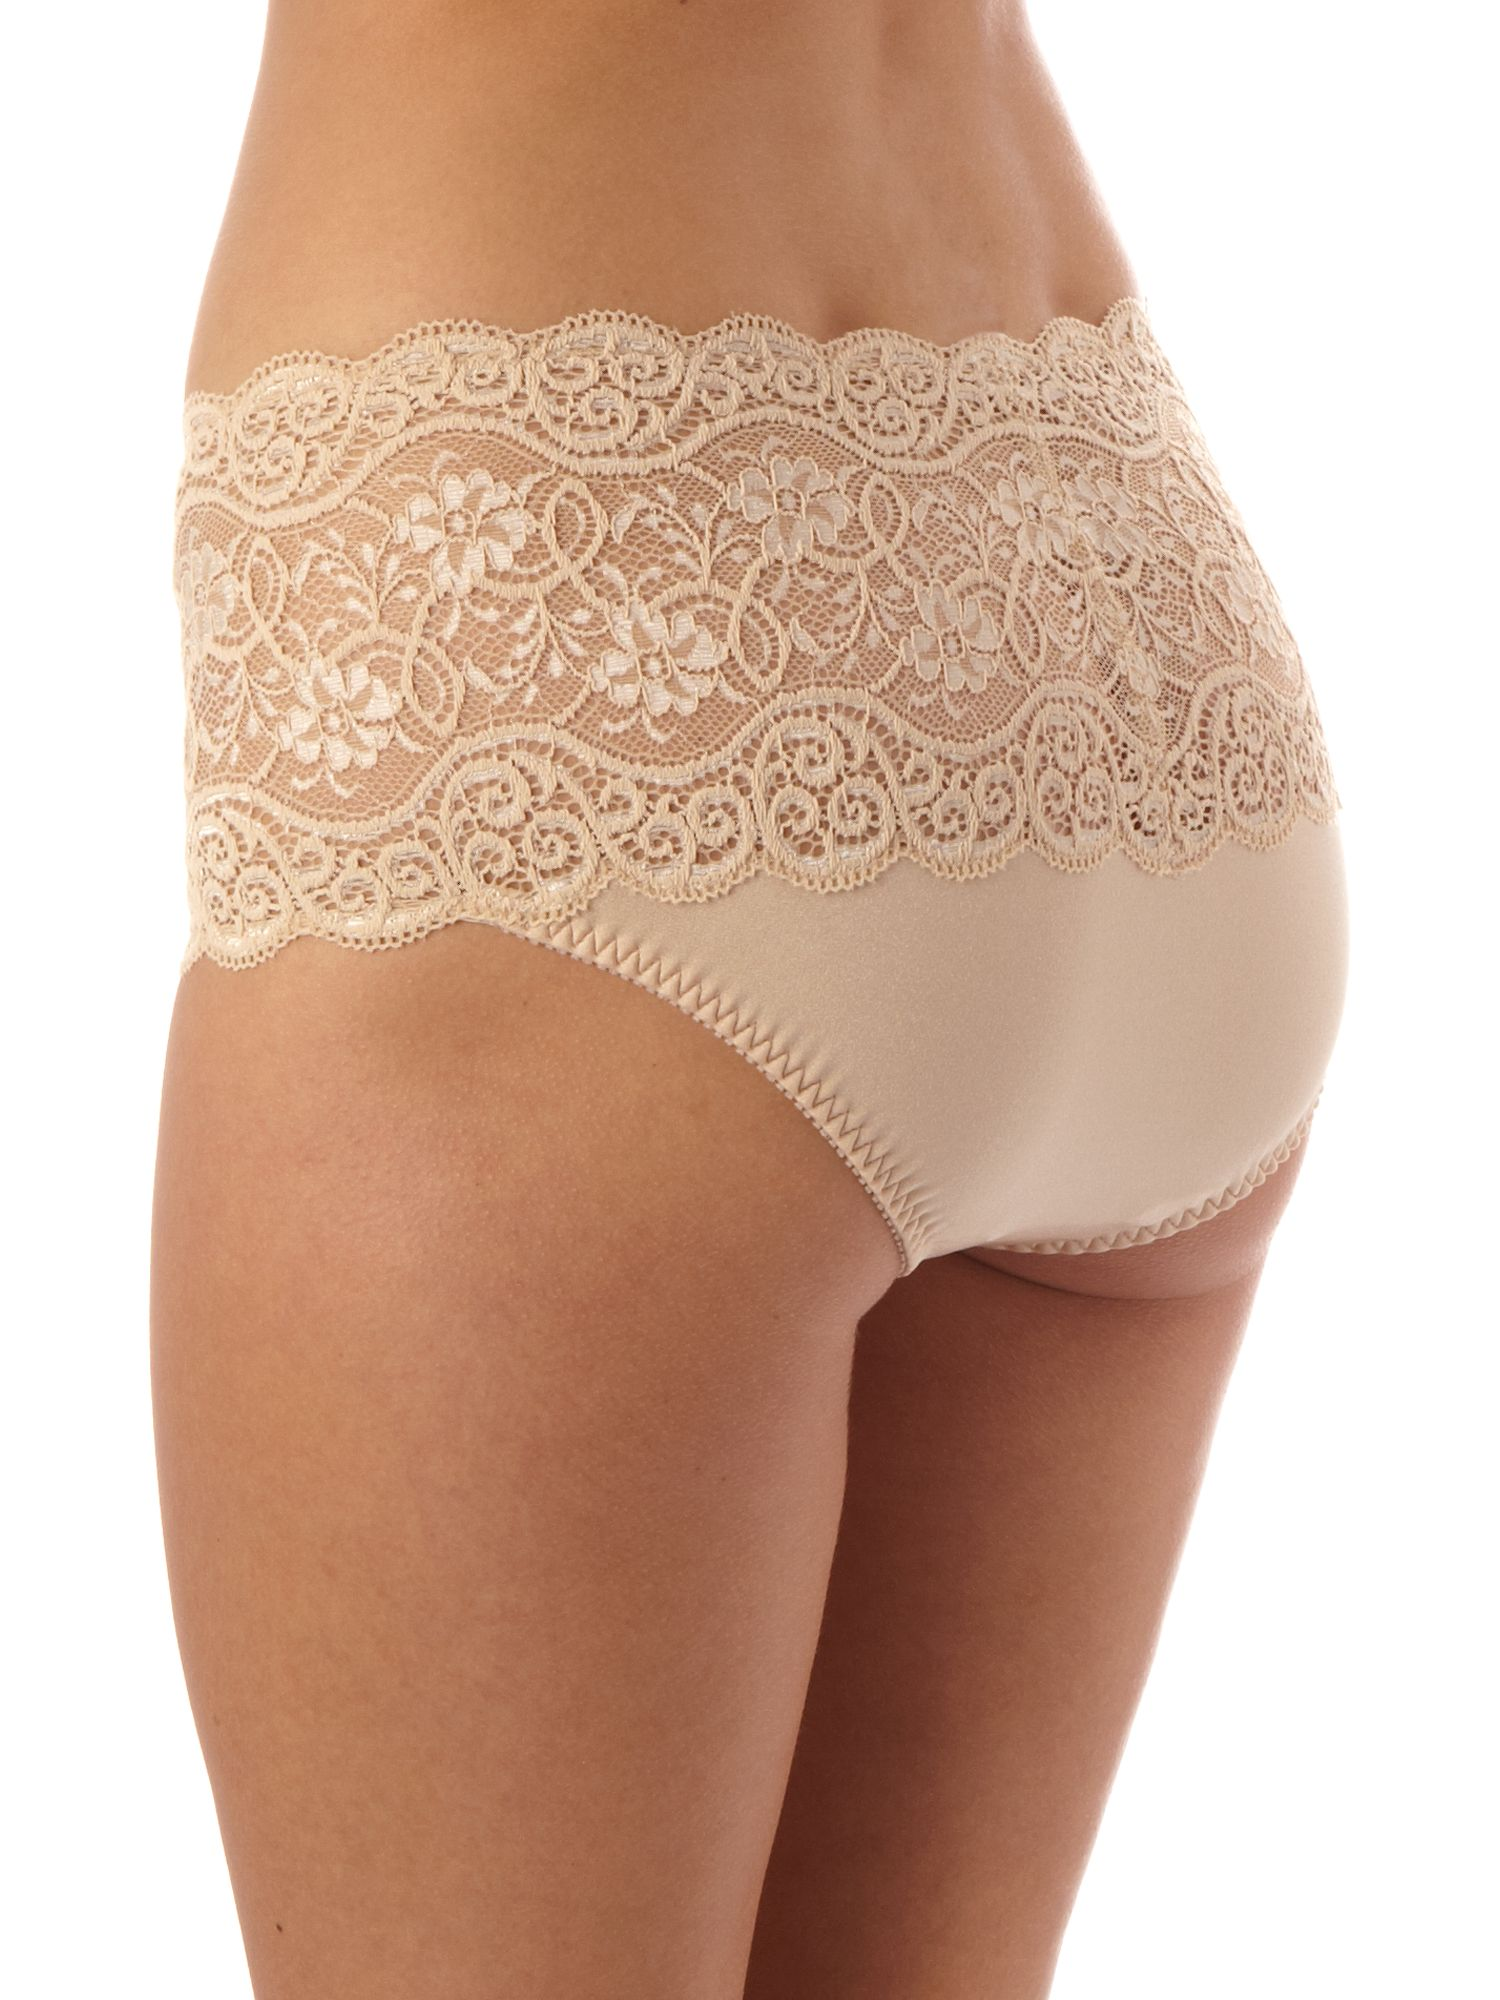 Amourette 300 maxi brief